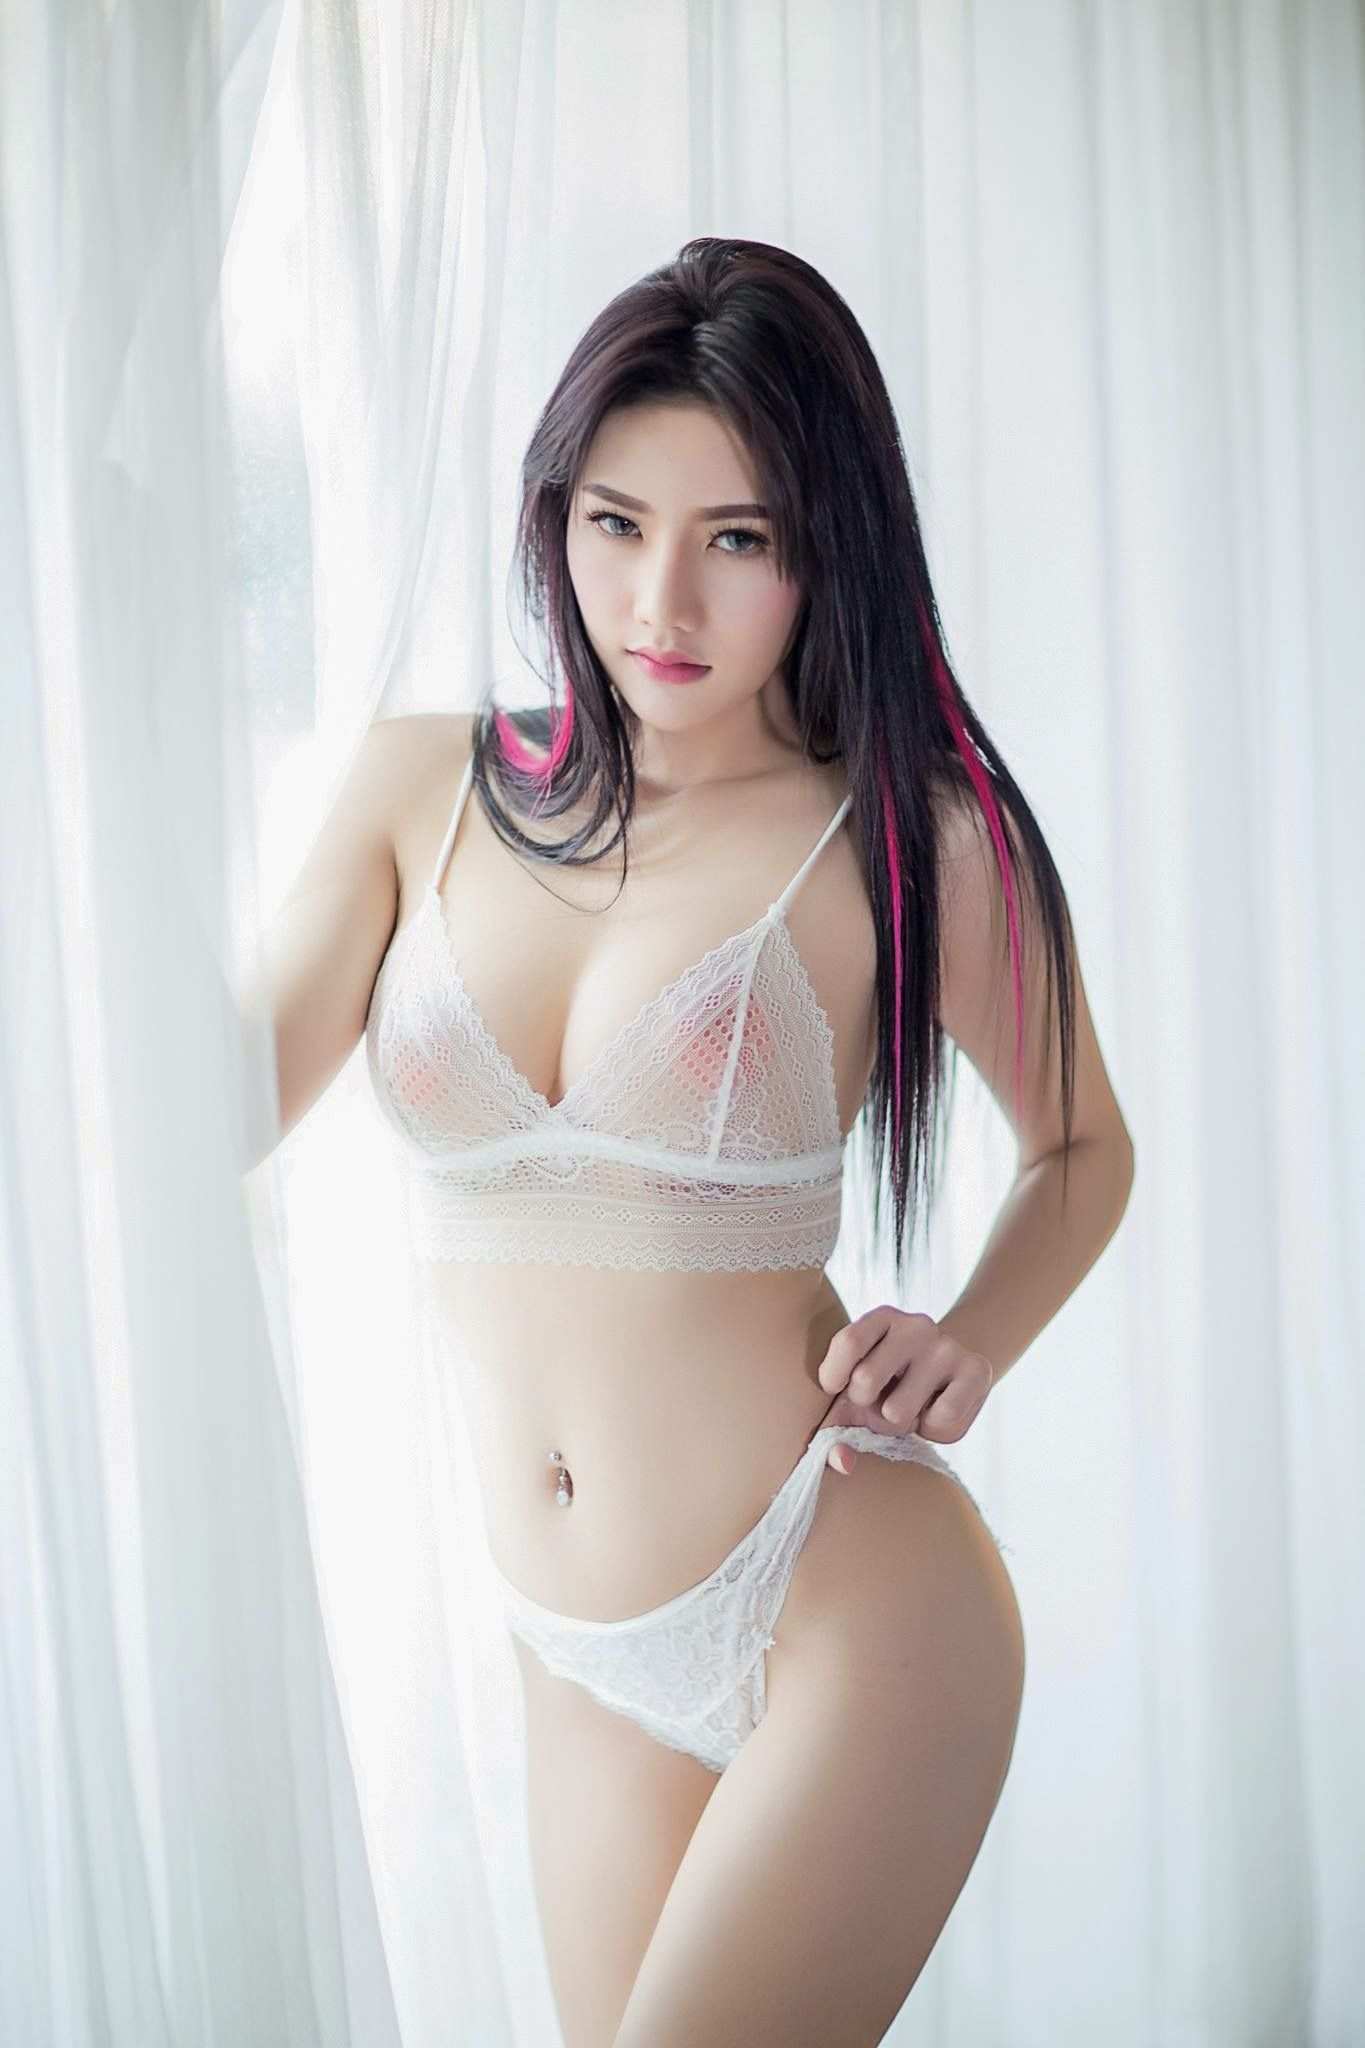 Asian girls nice boobs see thru nitey lingerie